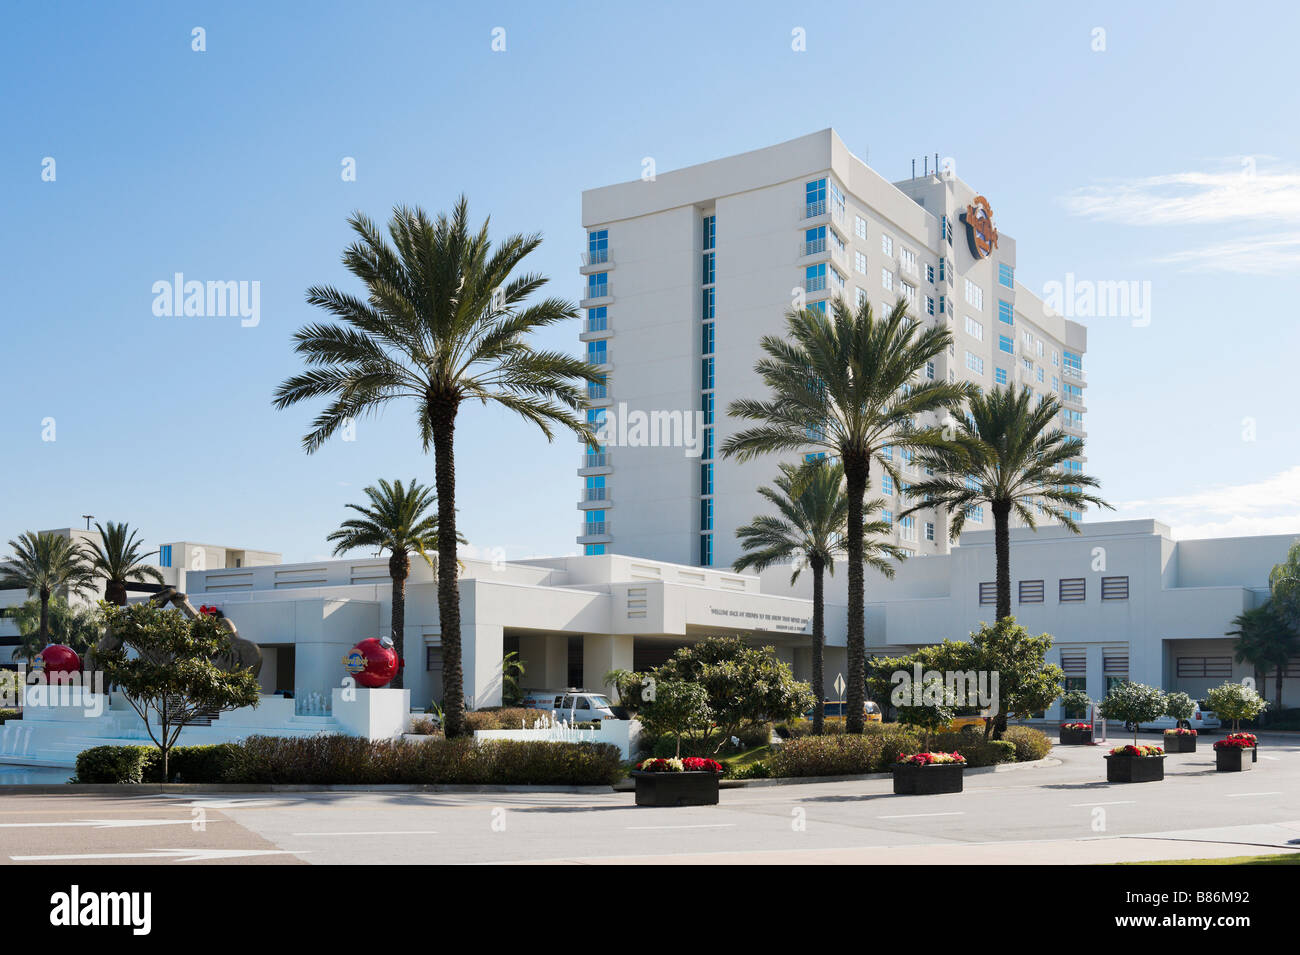 Entrance to the Seminole Hard Rock Hotel and Casino just outside Tampa, Florida, USA - Stock Image